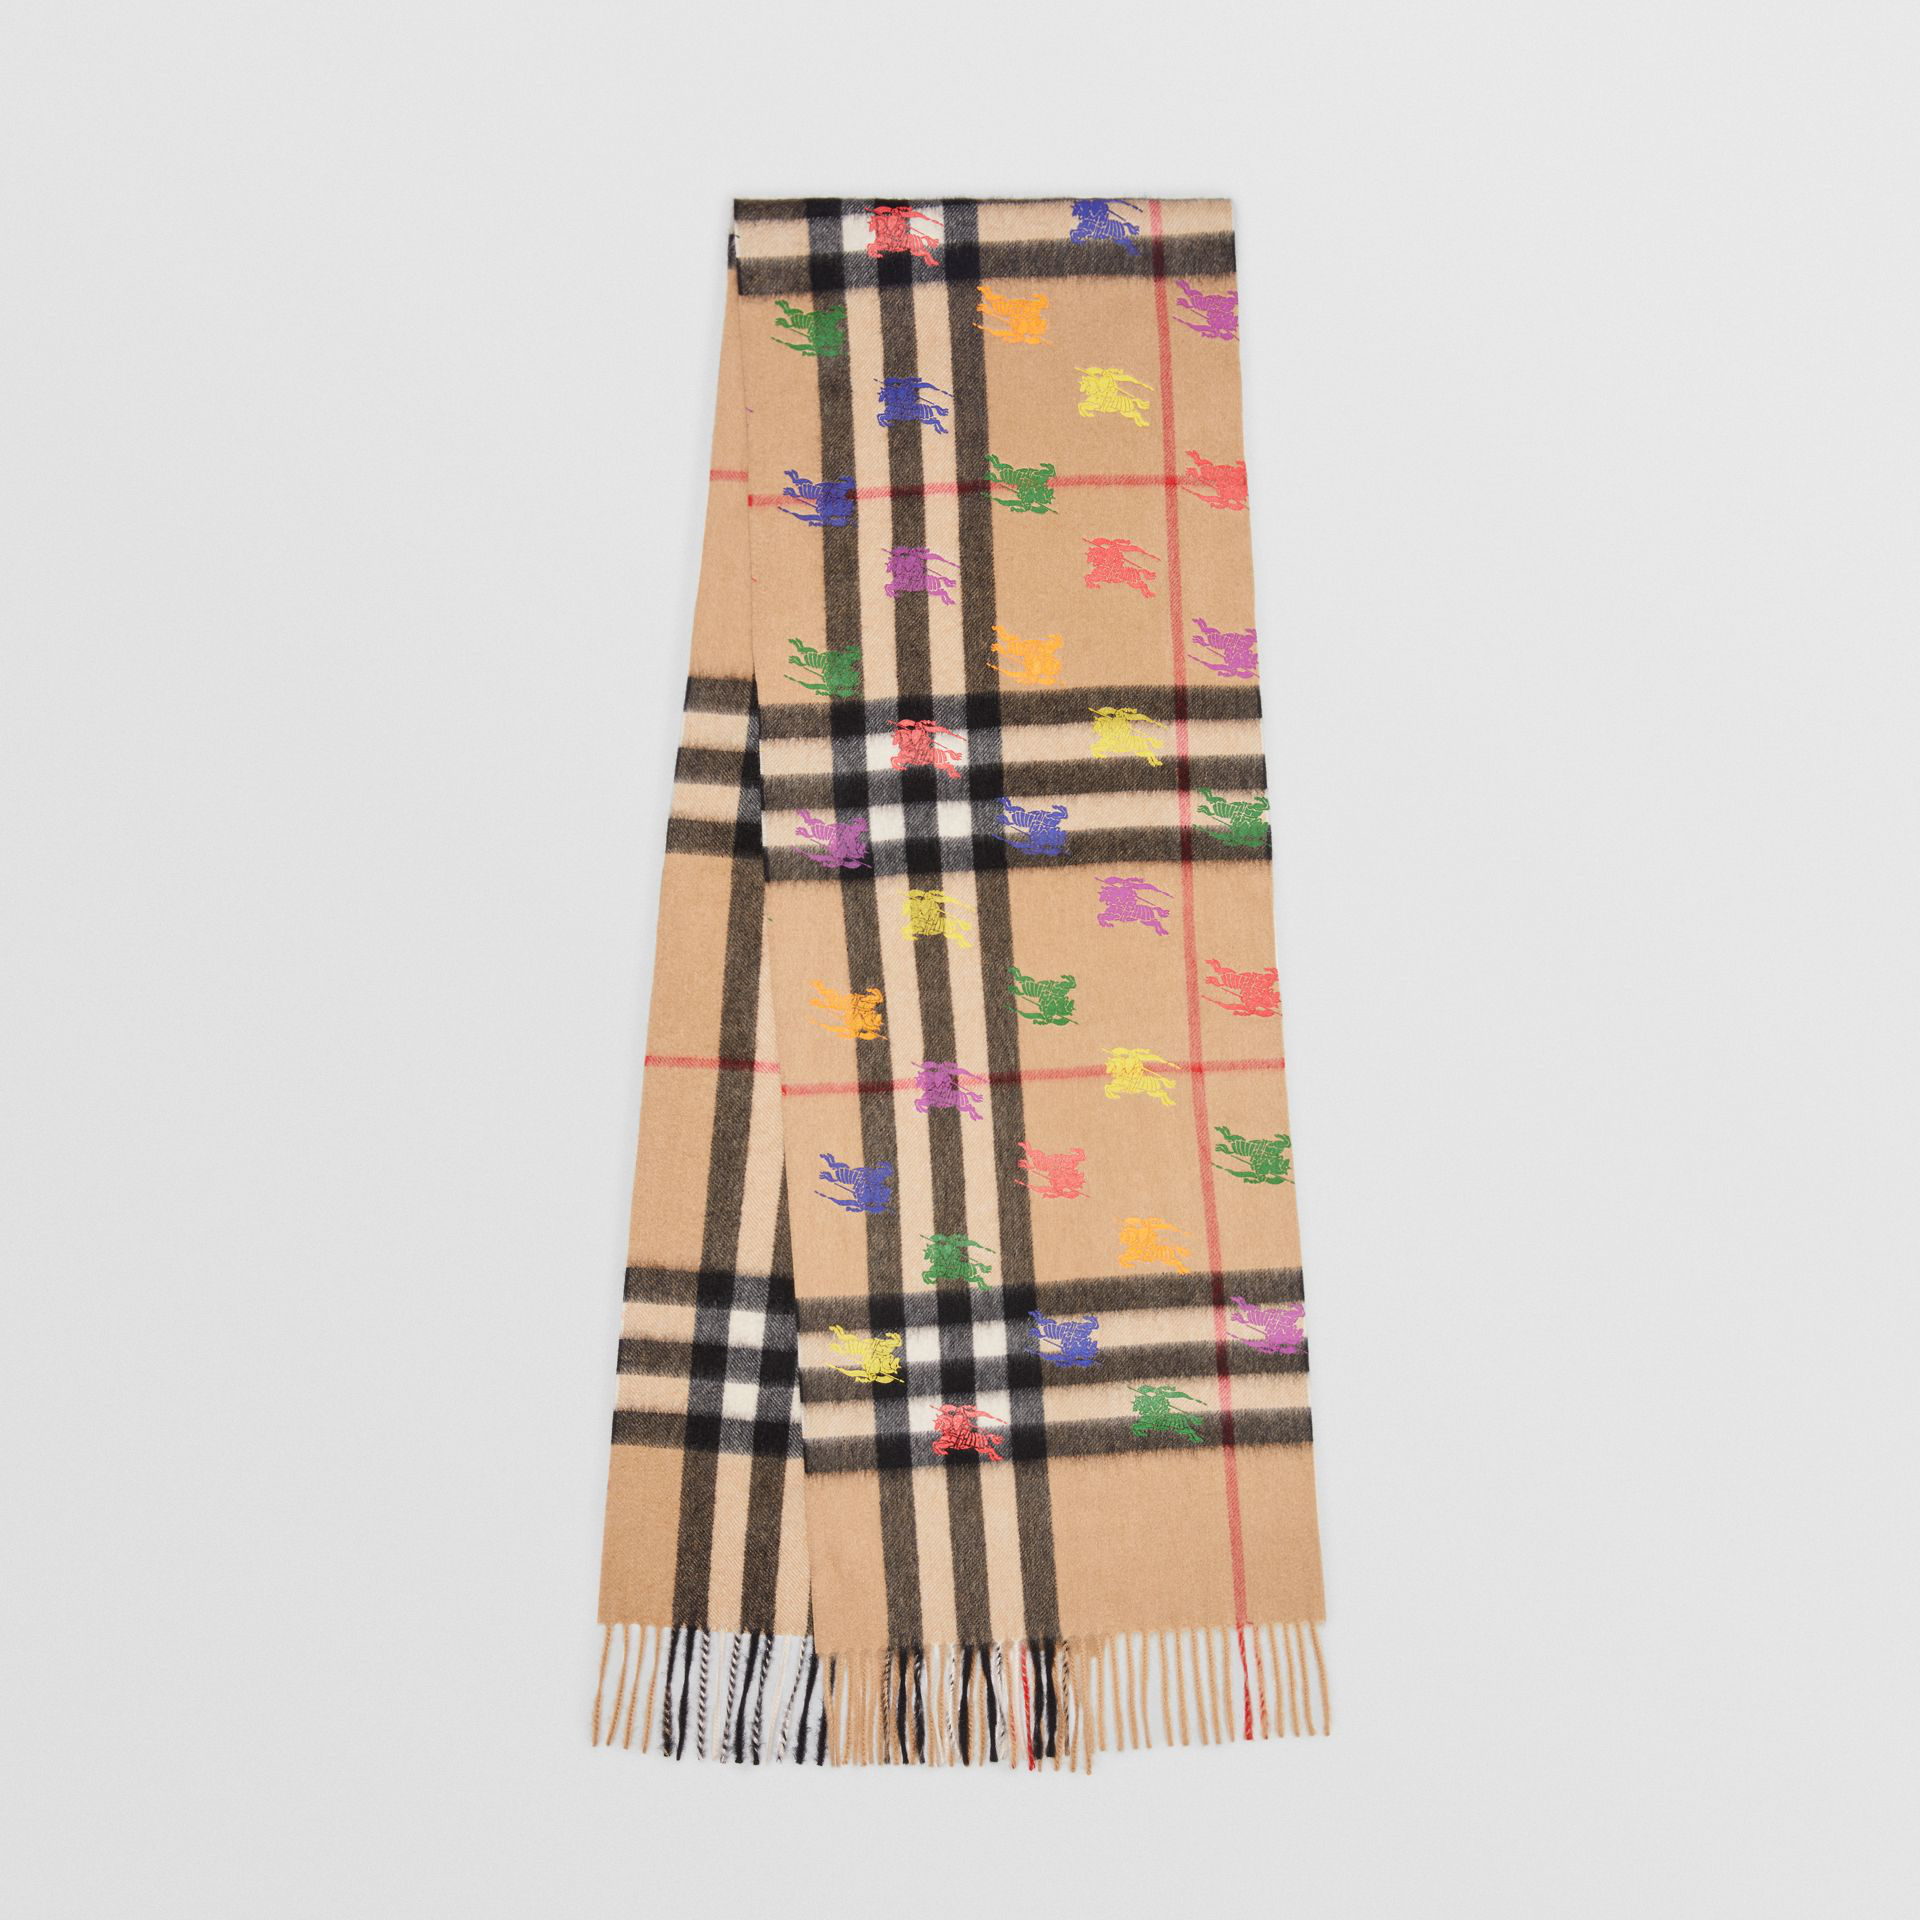 b1966a77b47b5 Burberry The Classic Check Cashmere Scarf In Ekd Print In Camel ...